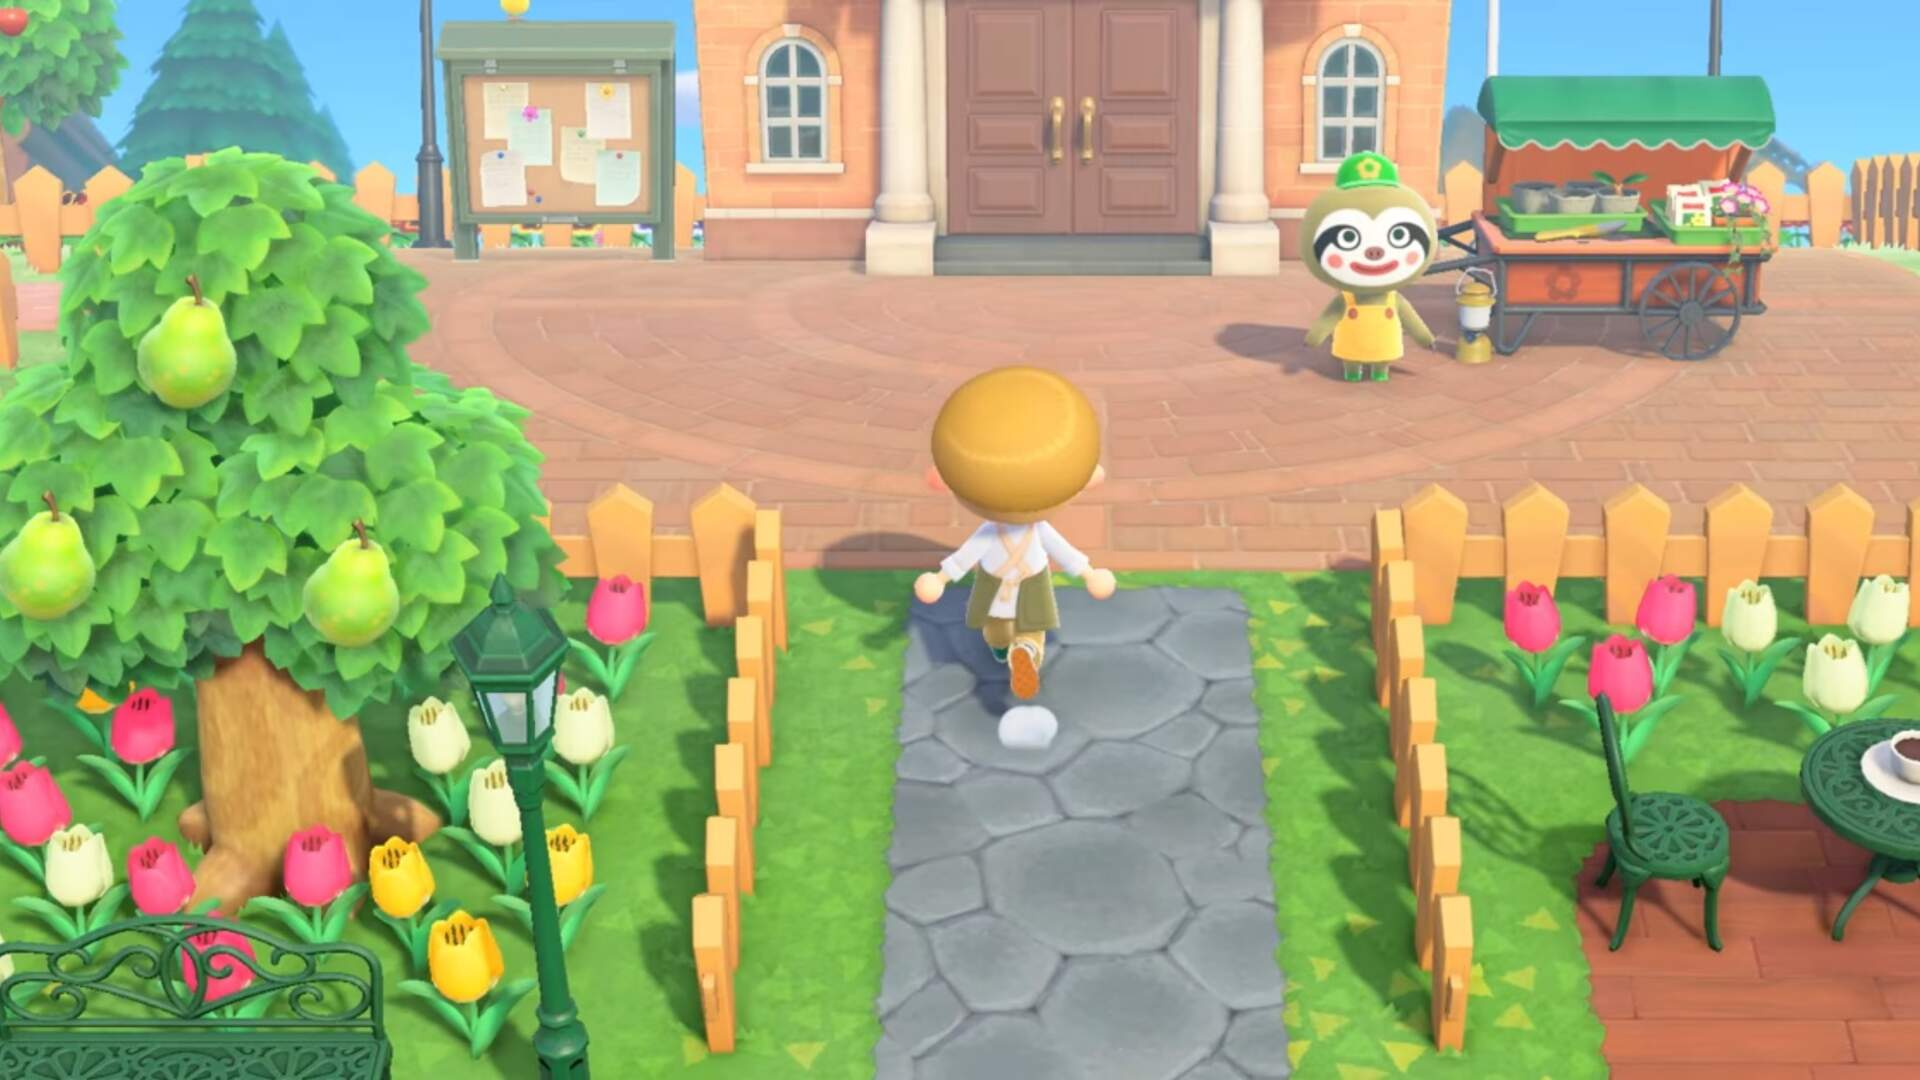 Animal Crossing New Horizons: How to Find Leif's Garden Shop and Get Shrubs